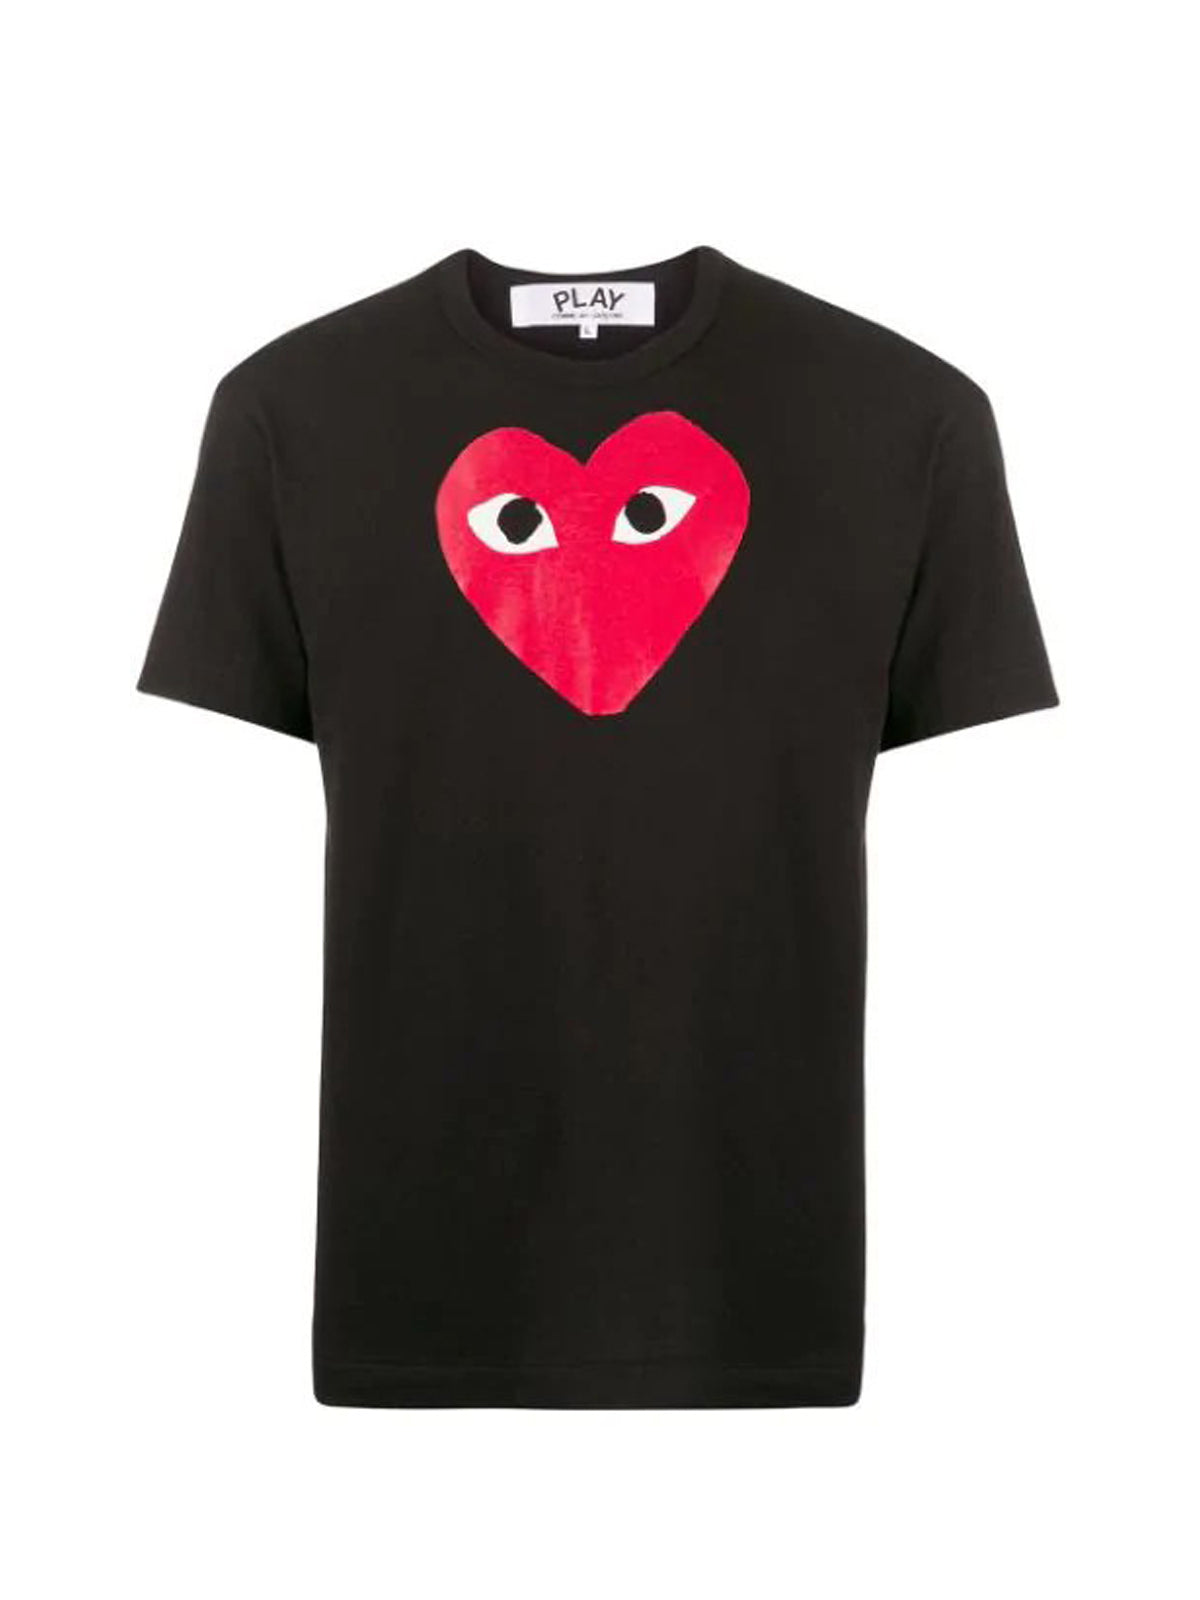 T-SHIRT CON STAMPA CUORE